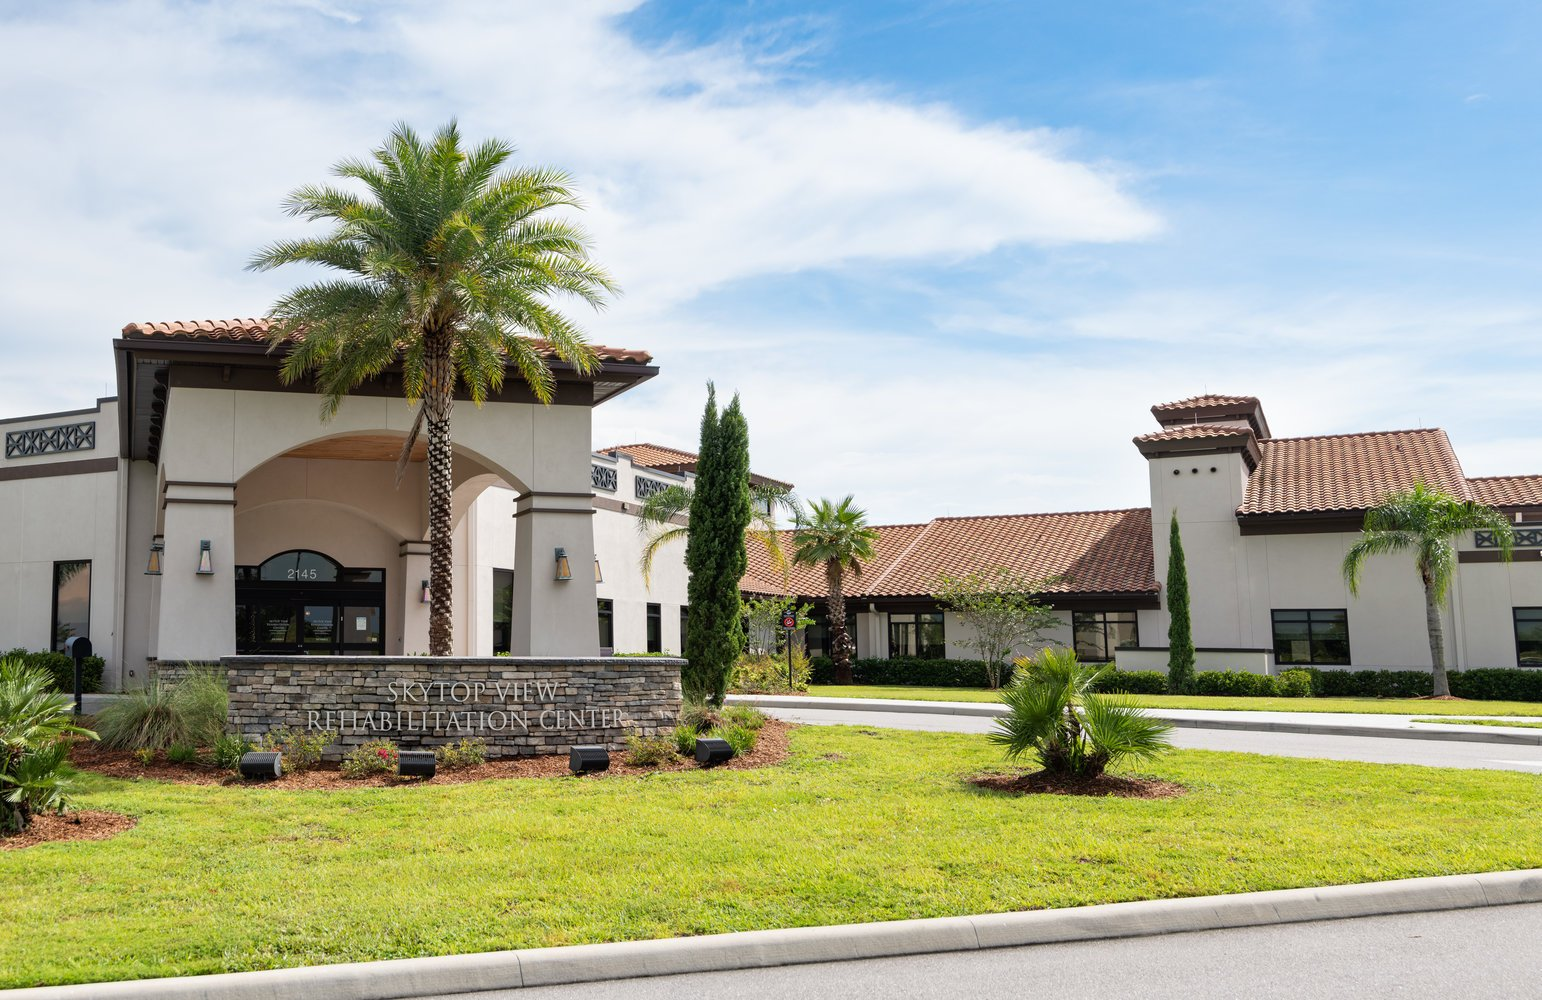 121 Florida Nursing Homes Rated As Best In State U S News G3 Development